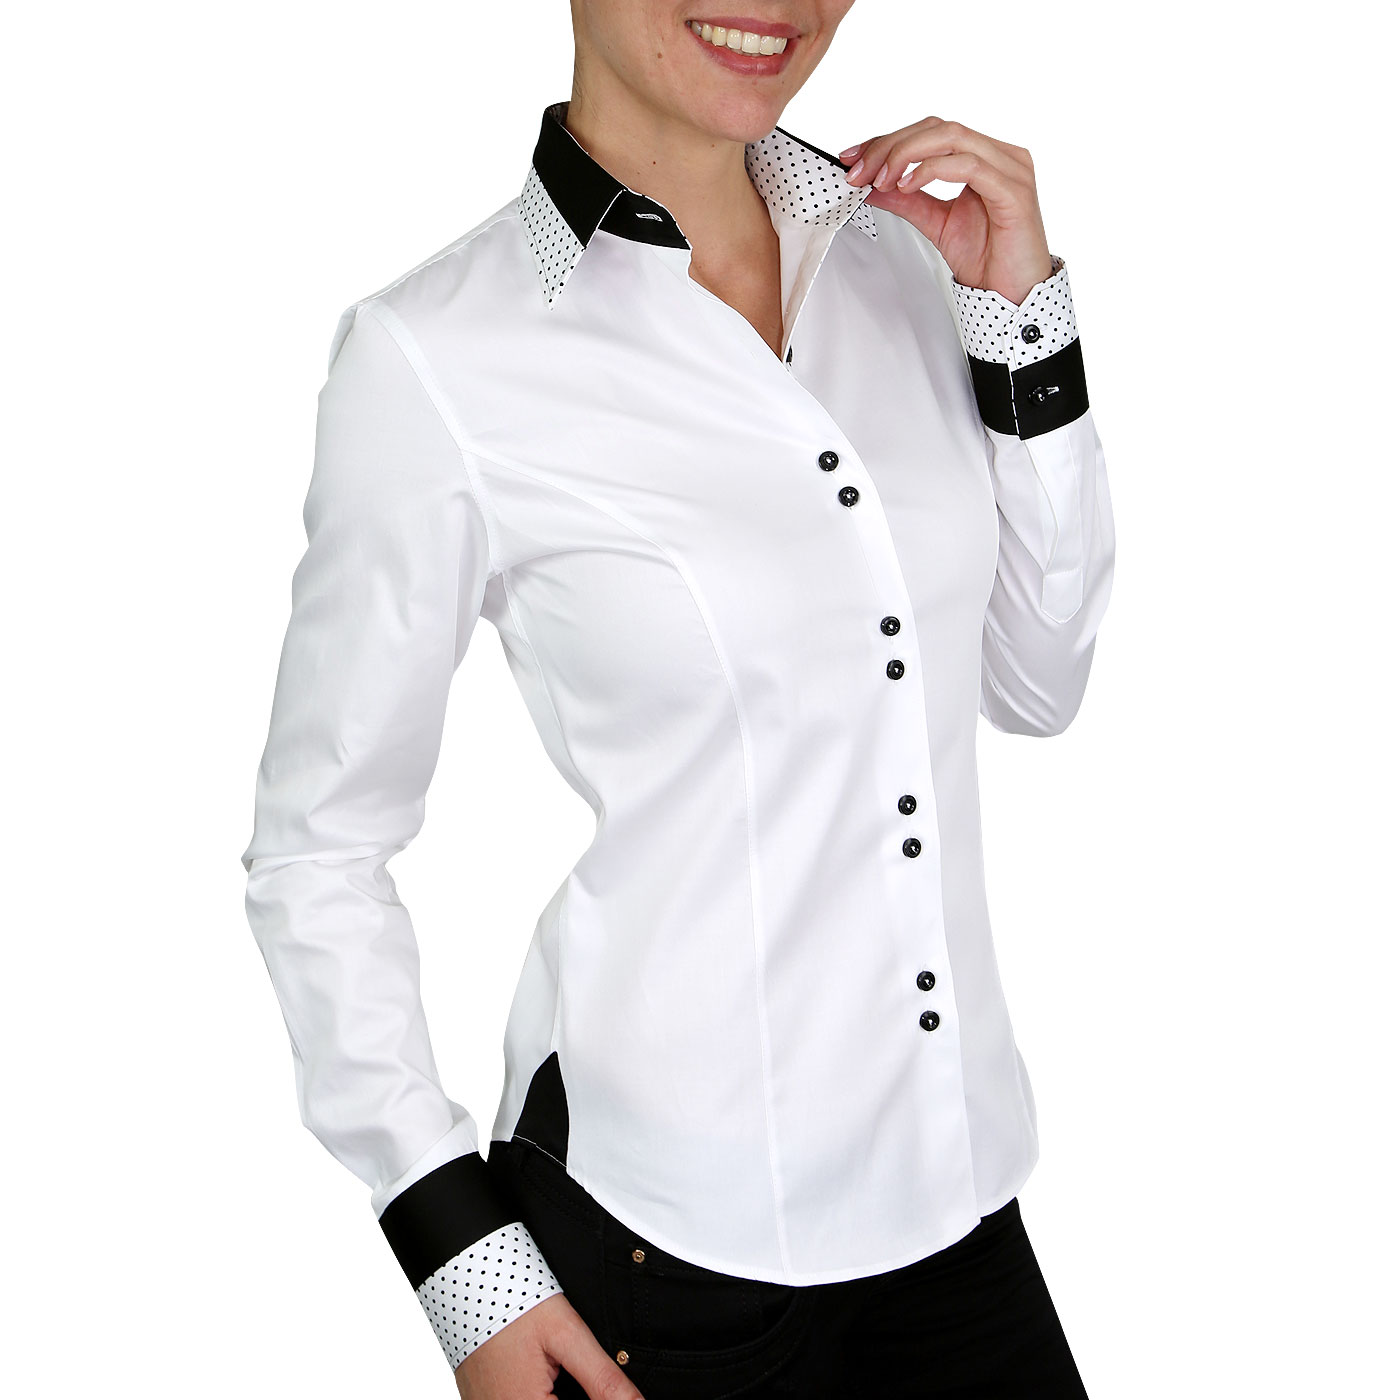 French Cuffs Woman's Shirts